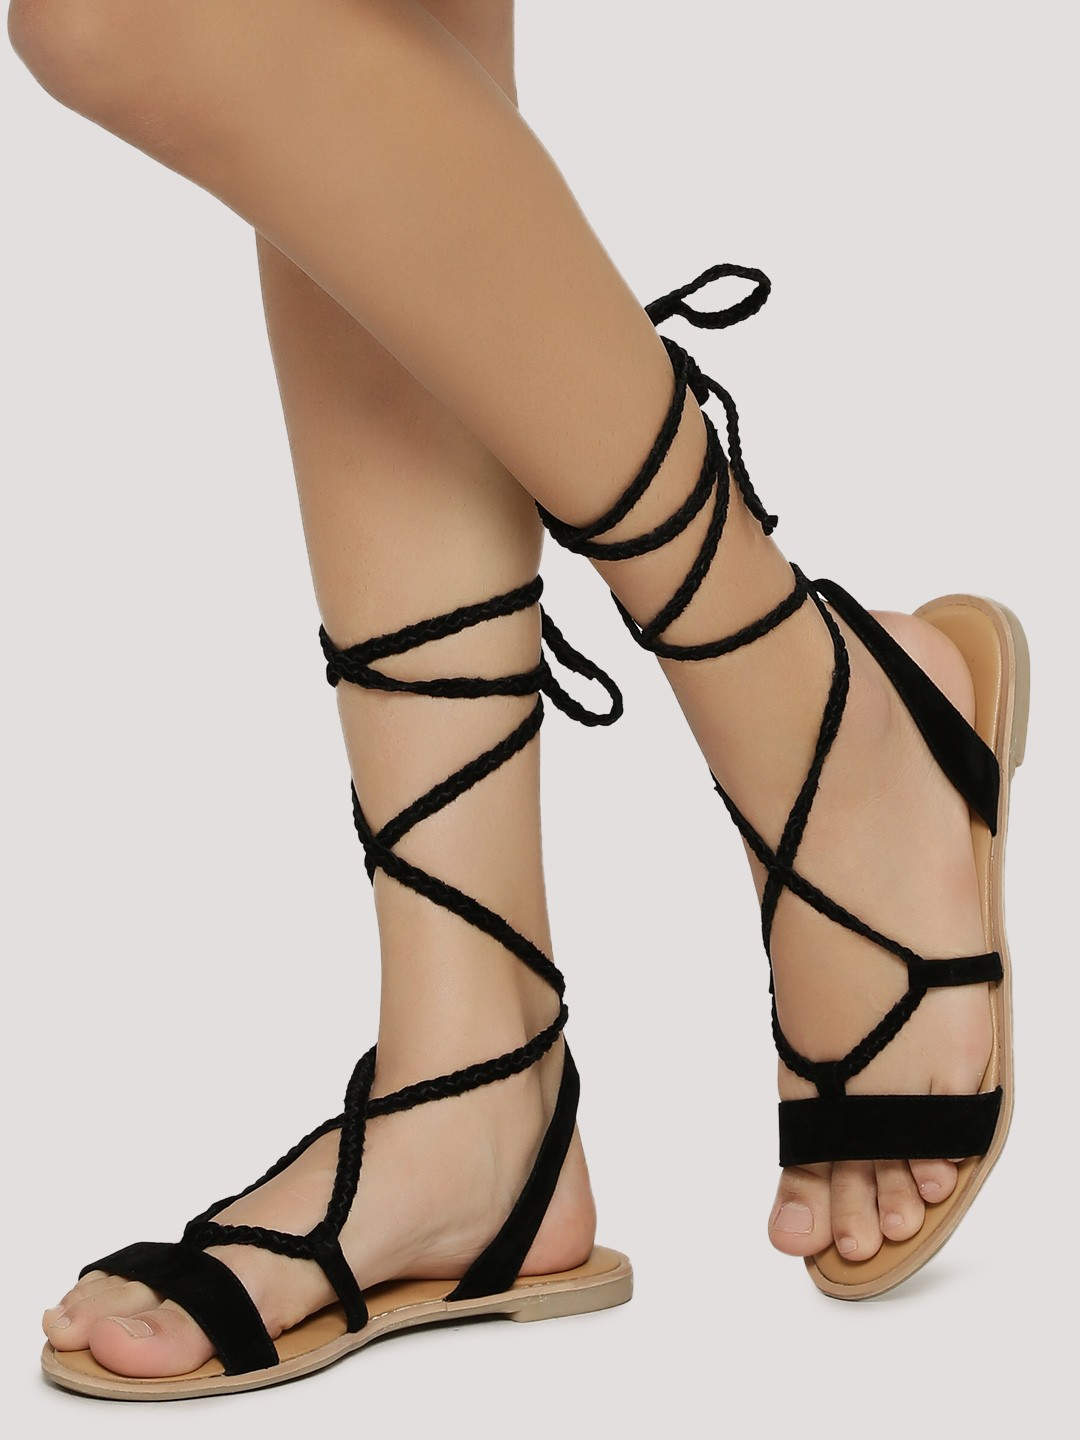 2 strappy sandals